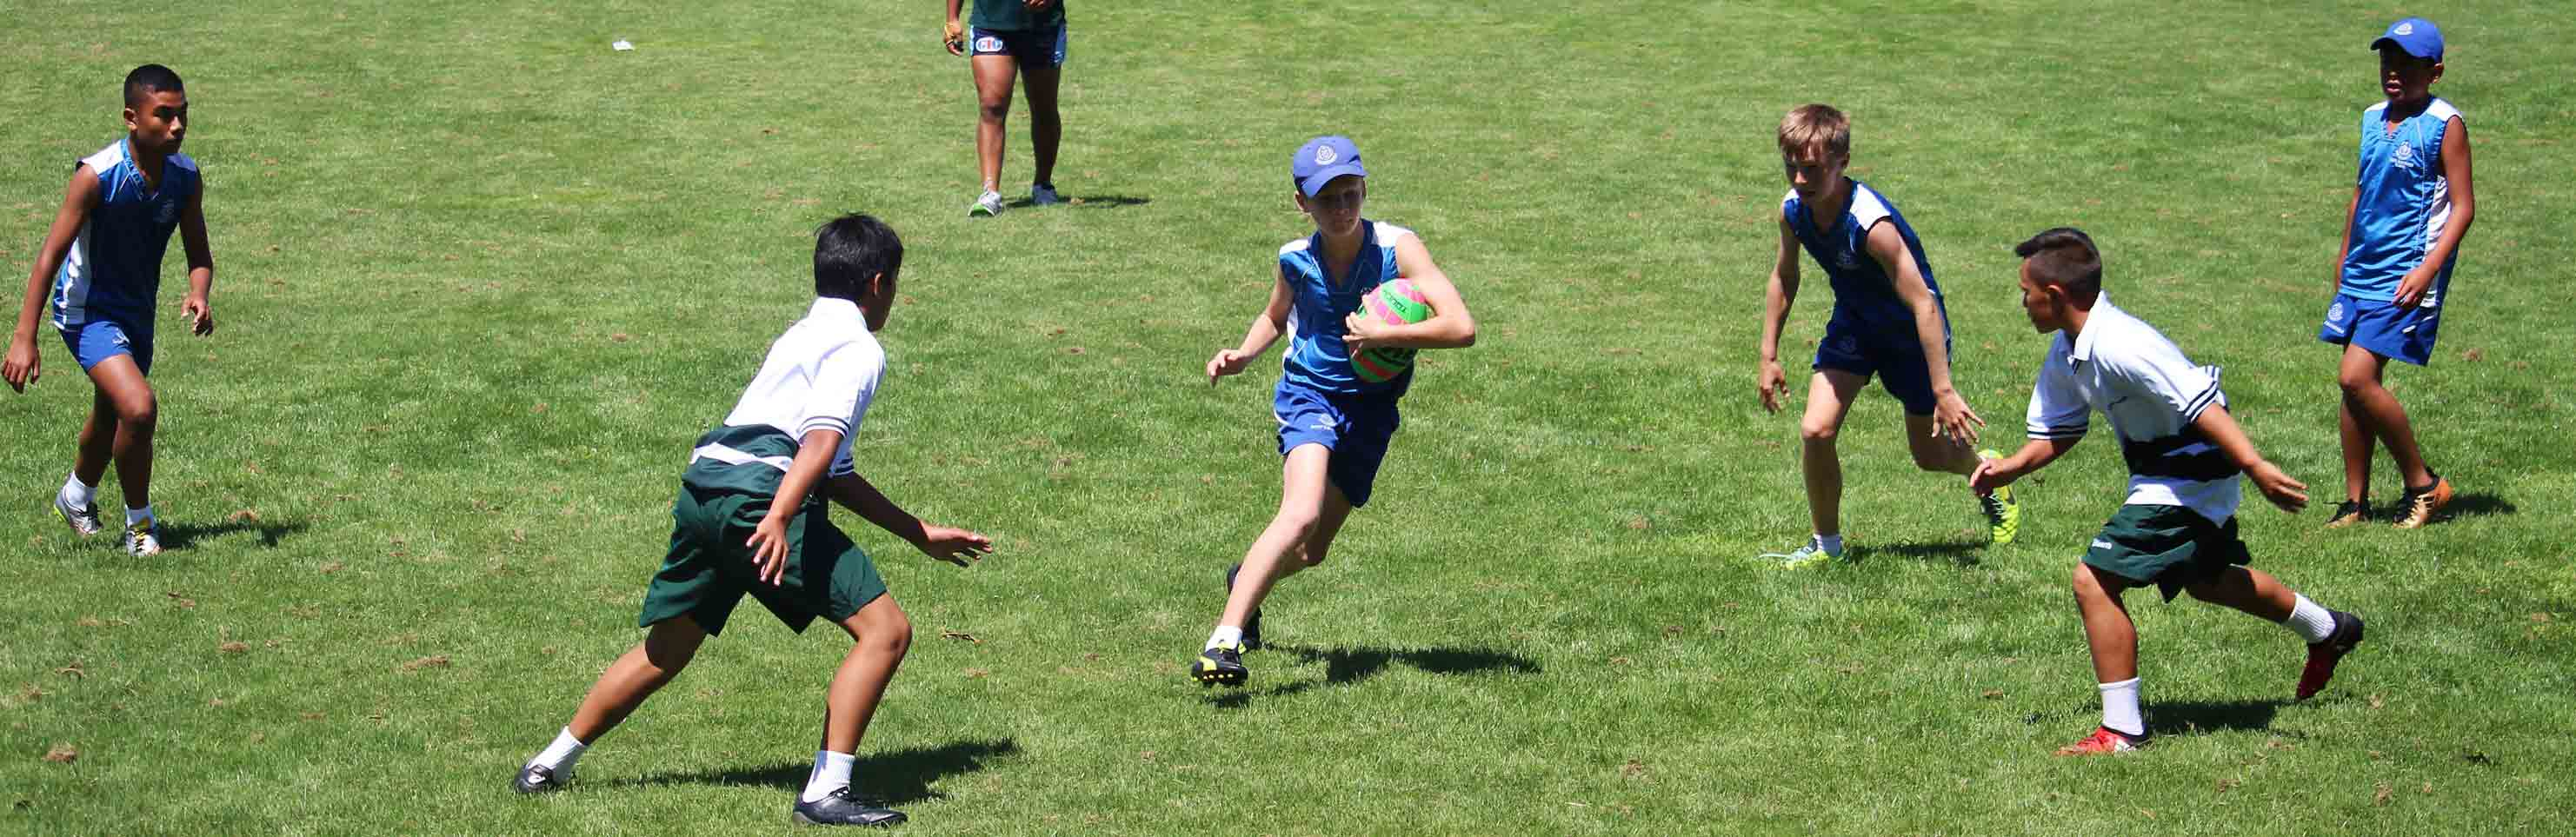 Saint-Kentigern-Boys'-School-Sports-Touch-Rugby.jpg